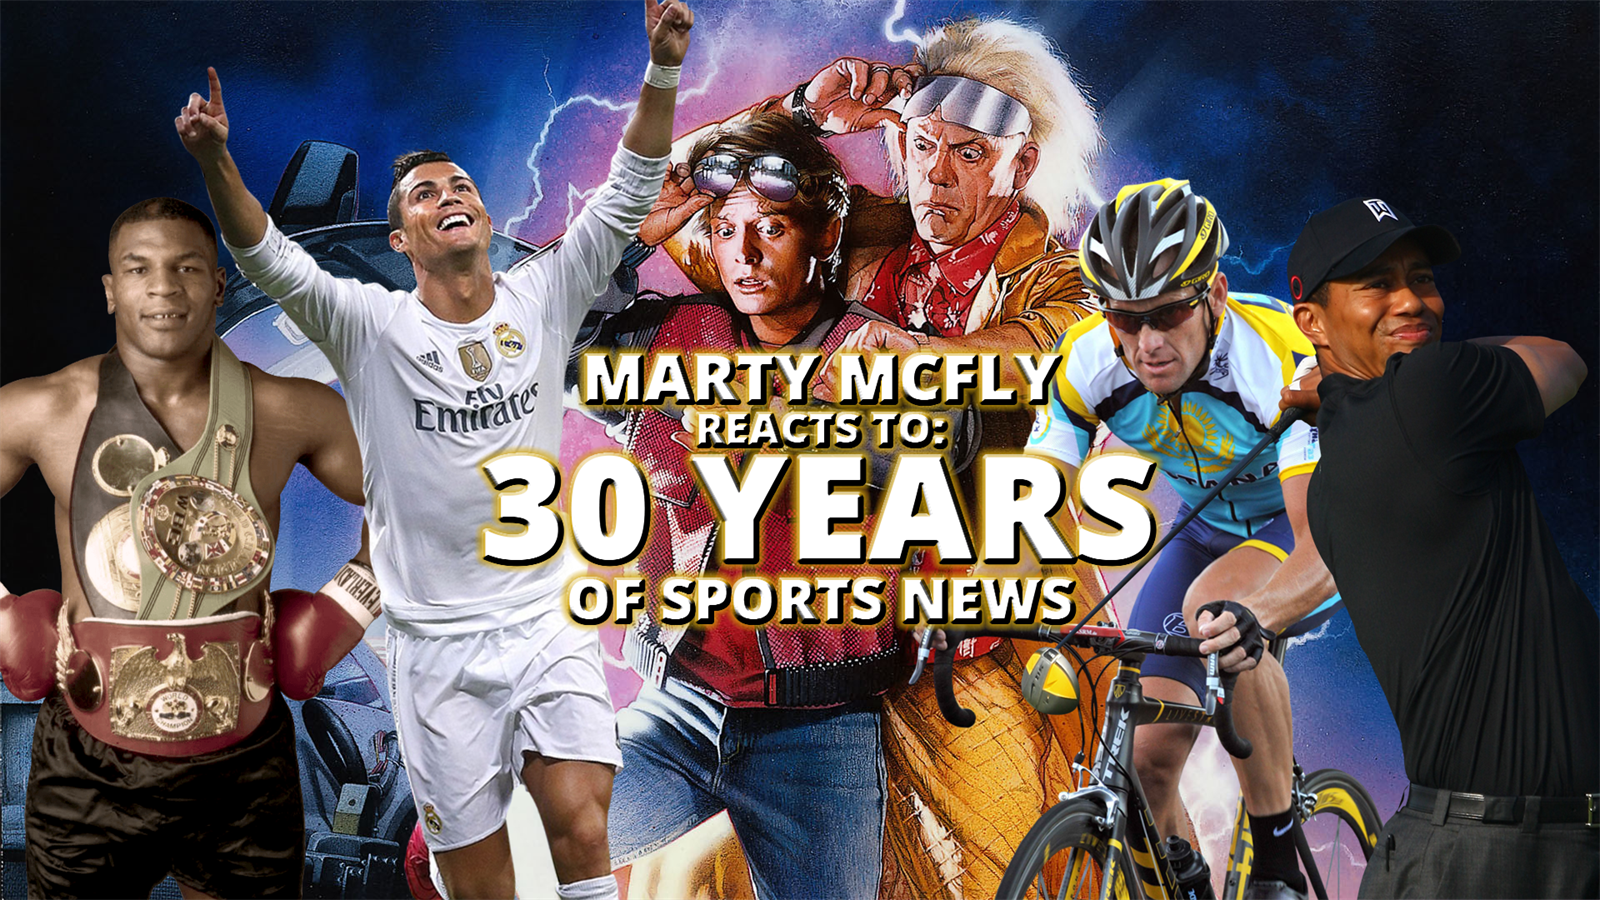 Video marty mcfly reacts to 30 years of sports news - British basketball league table ...